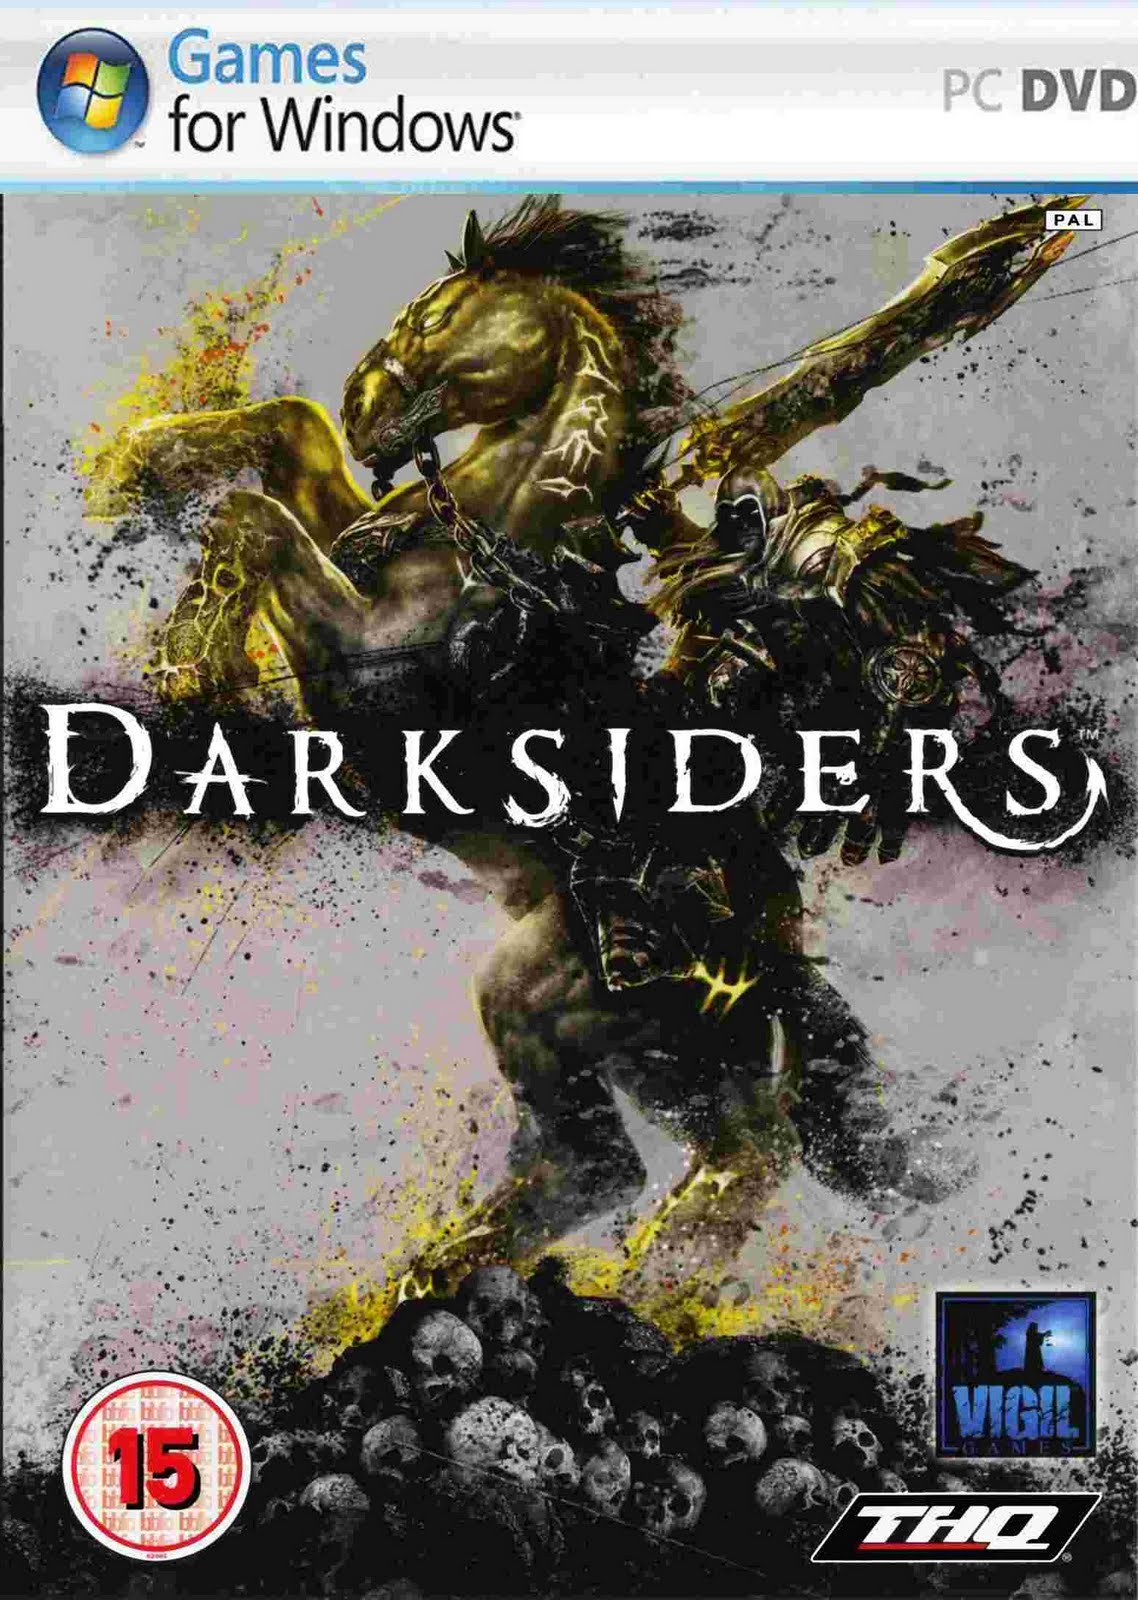 Dream Games: Darksiders